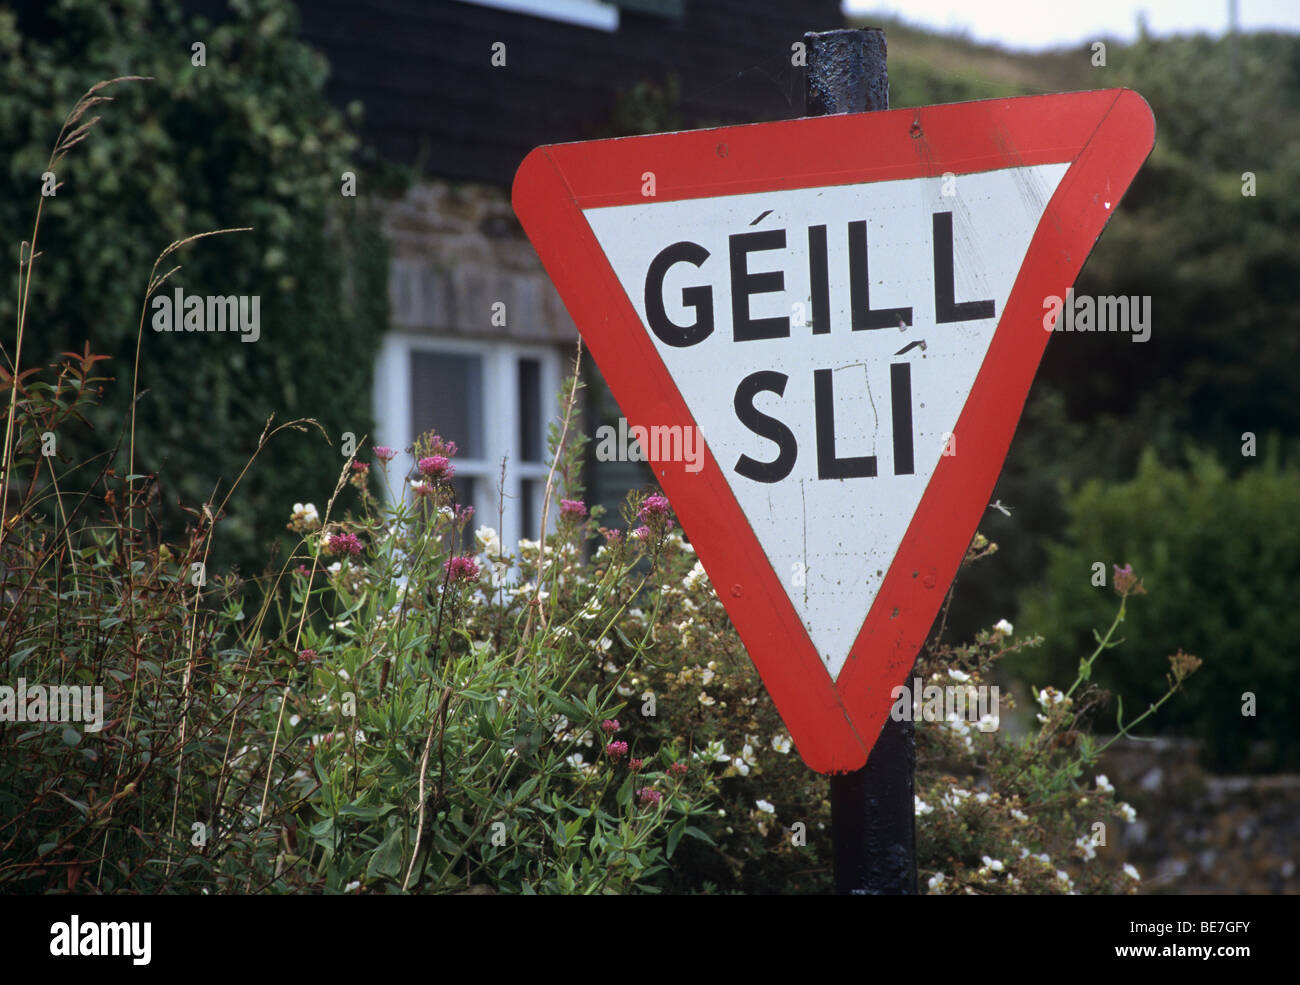 Republic of Ireland, County Waterford, Ardmore, Gaeltacht traffic sign - Stock Image